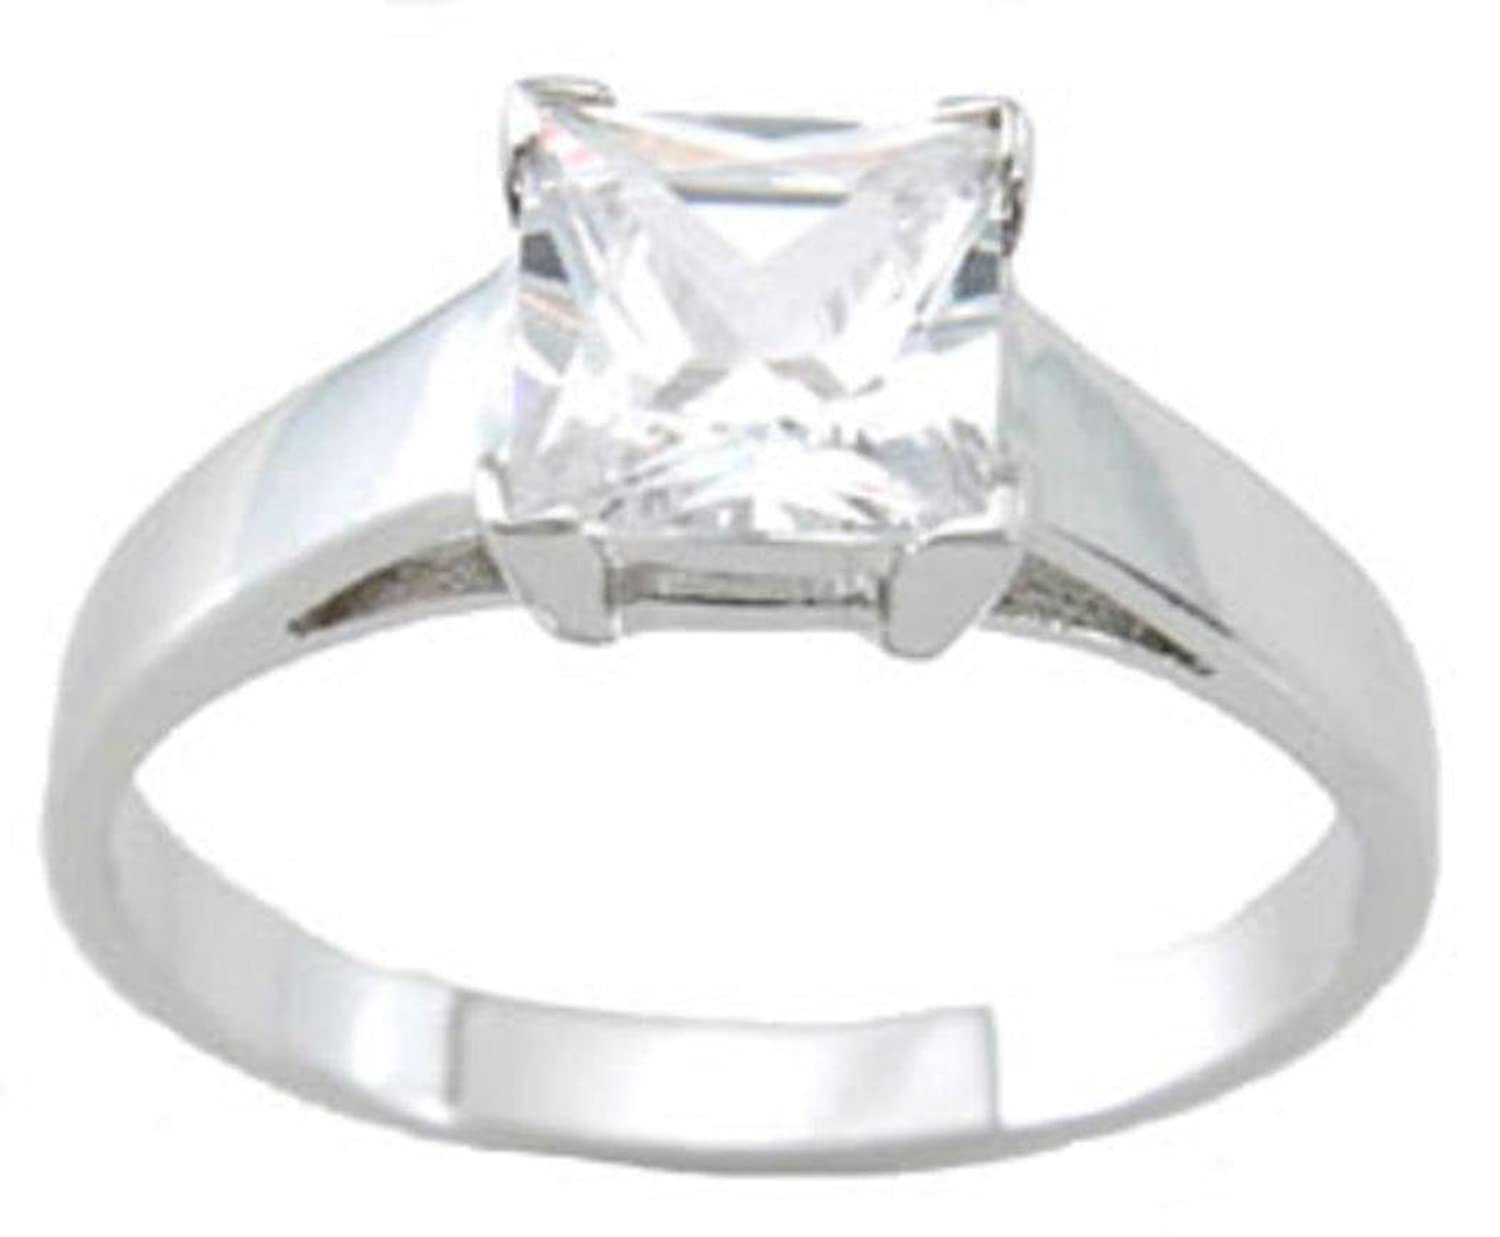 dia accented classic rings cut jewellery you modern look made square engagement and wedding ring